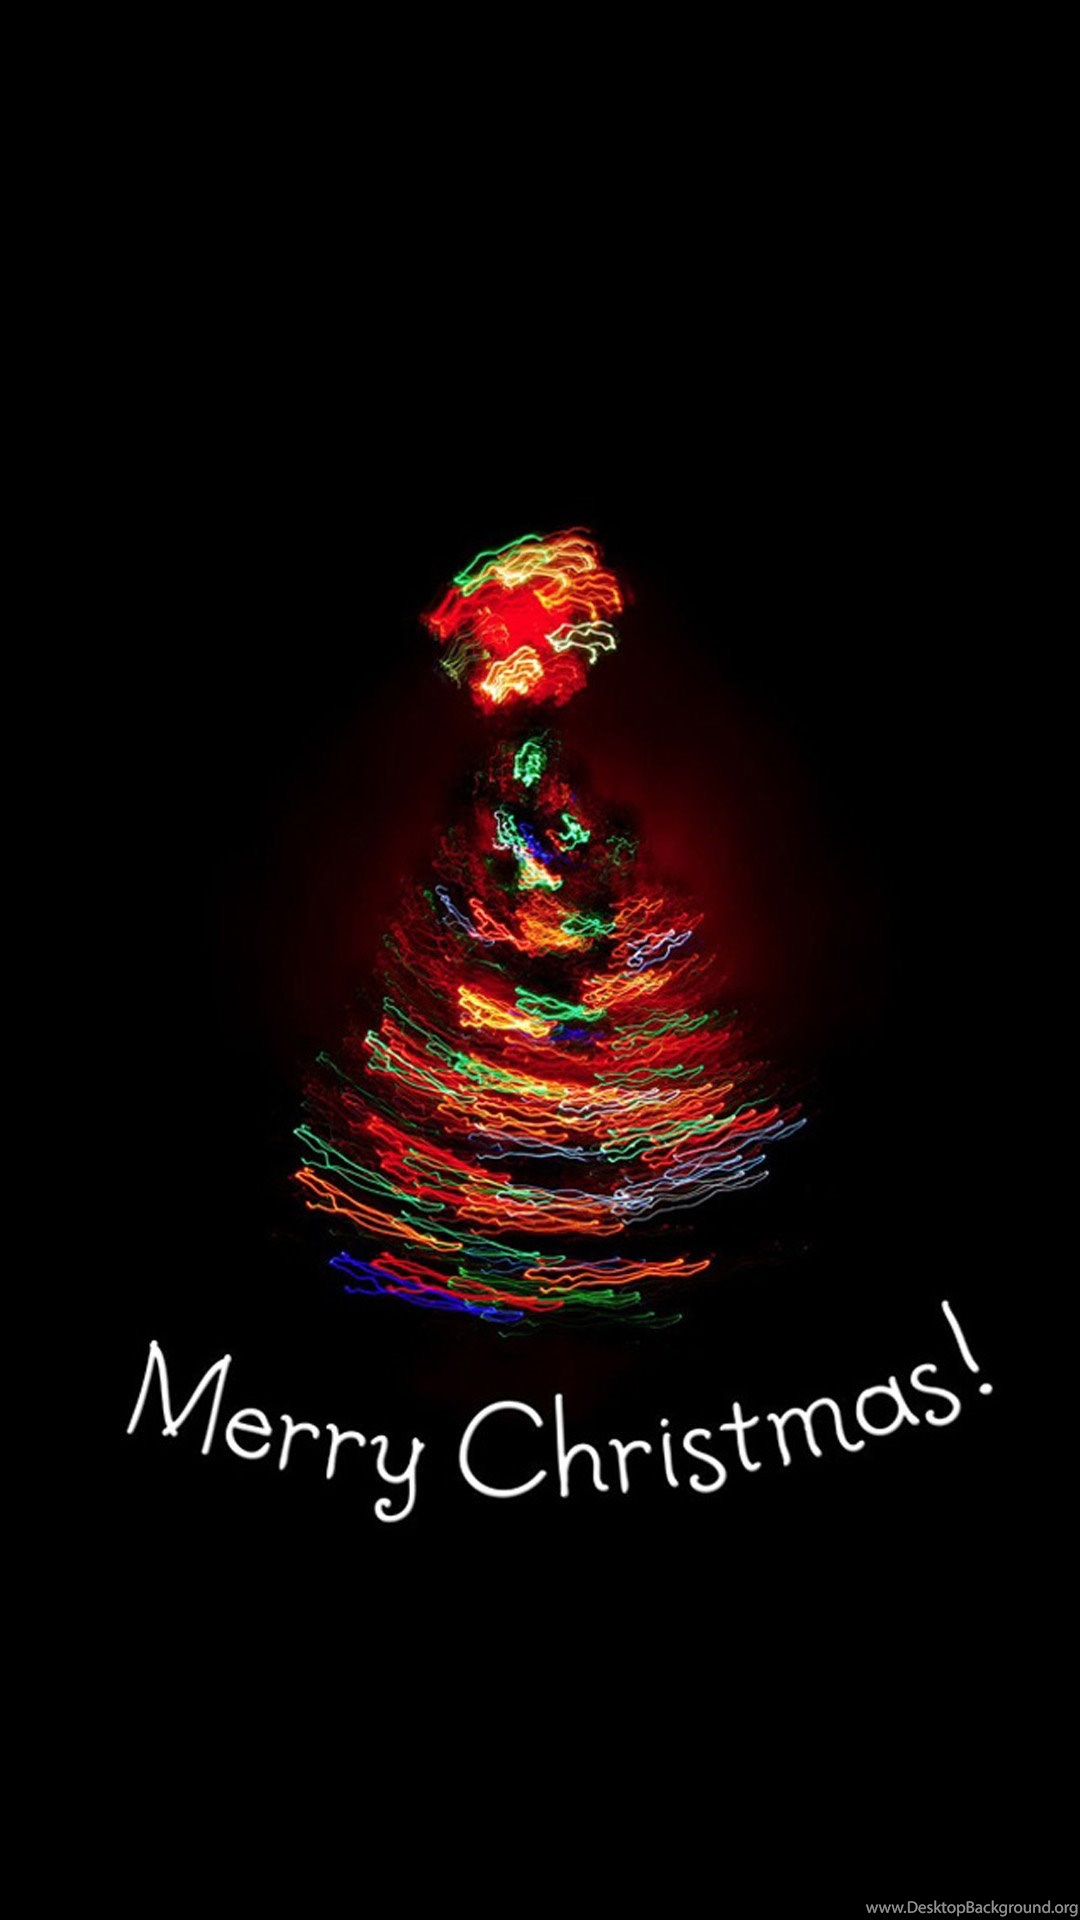 Merry Christmas 2 Android Wallpapers Hd Android Wallpapers Phone Desktop Background